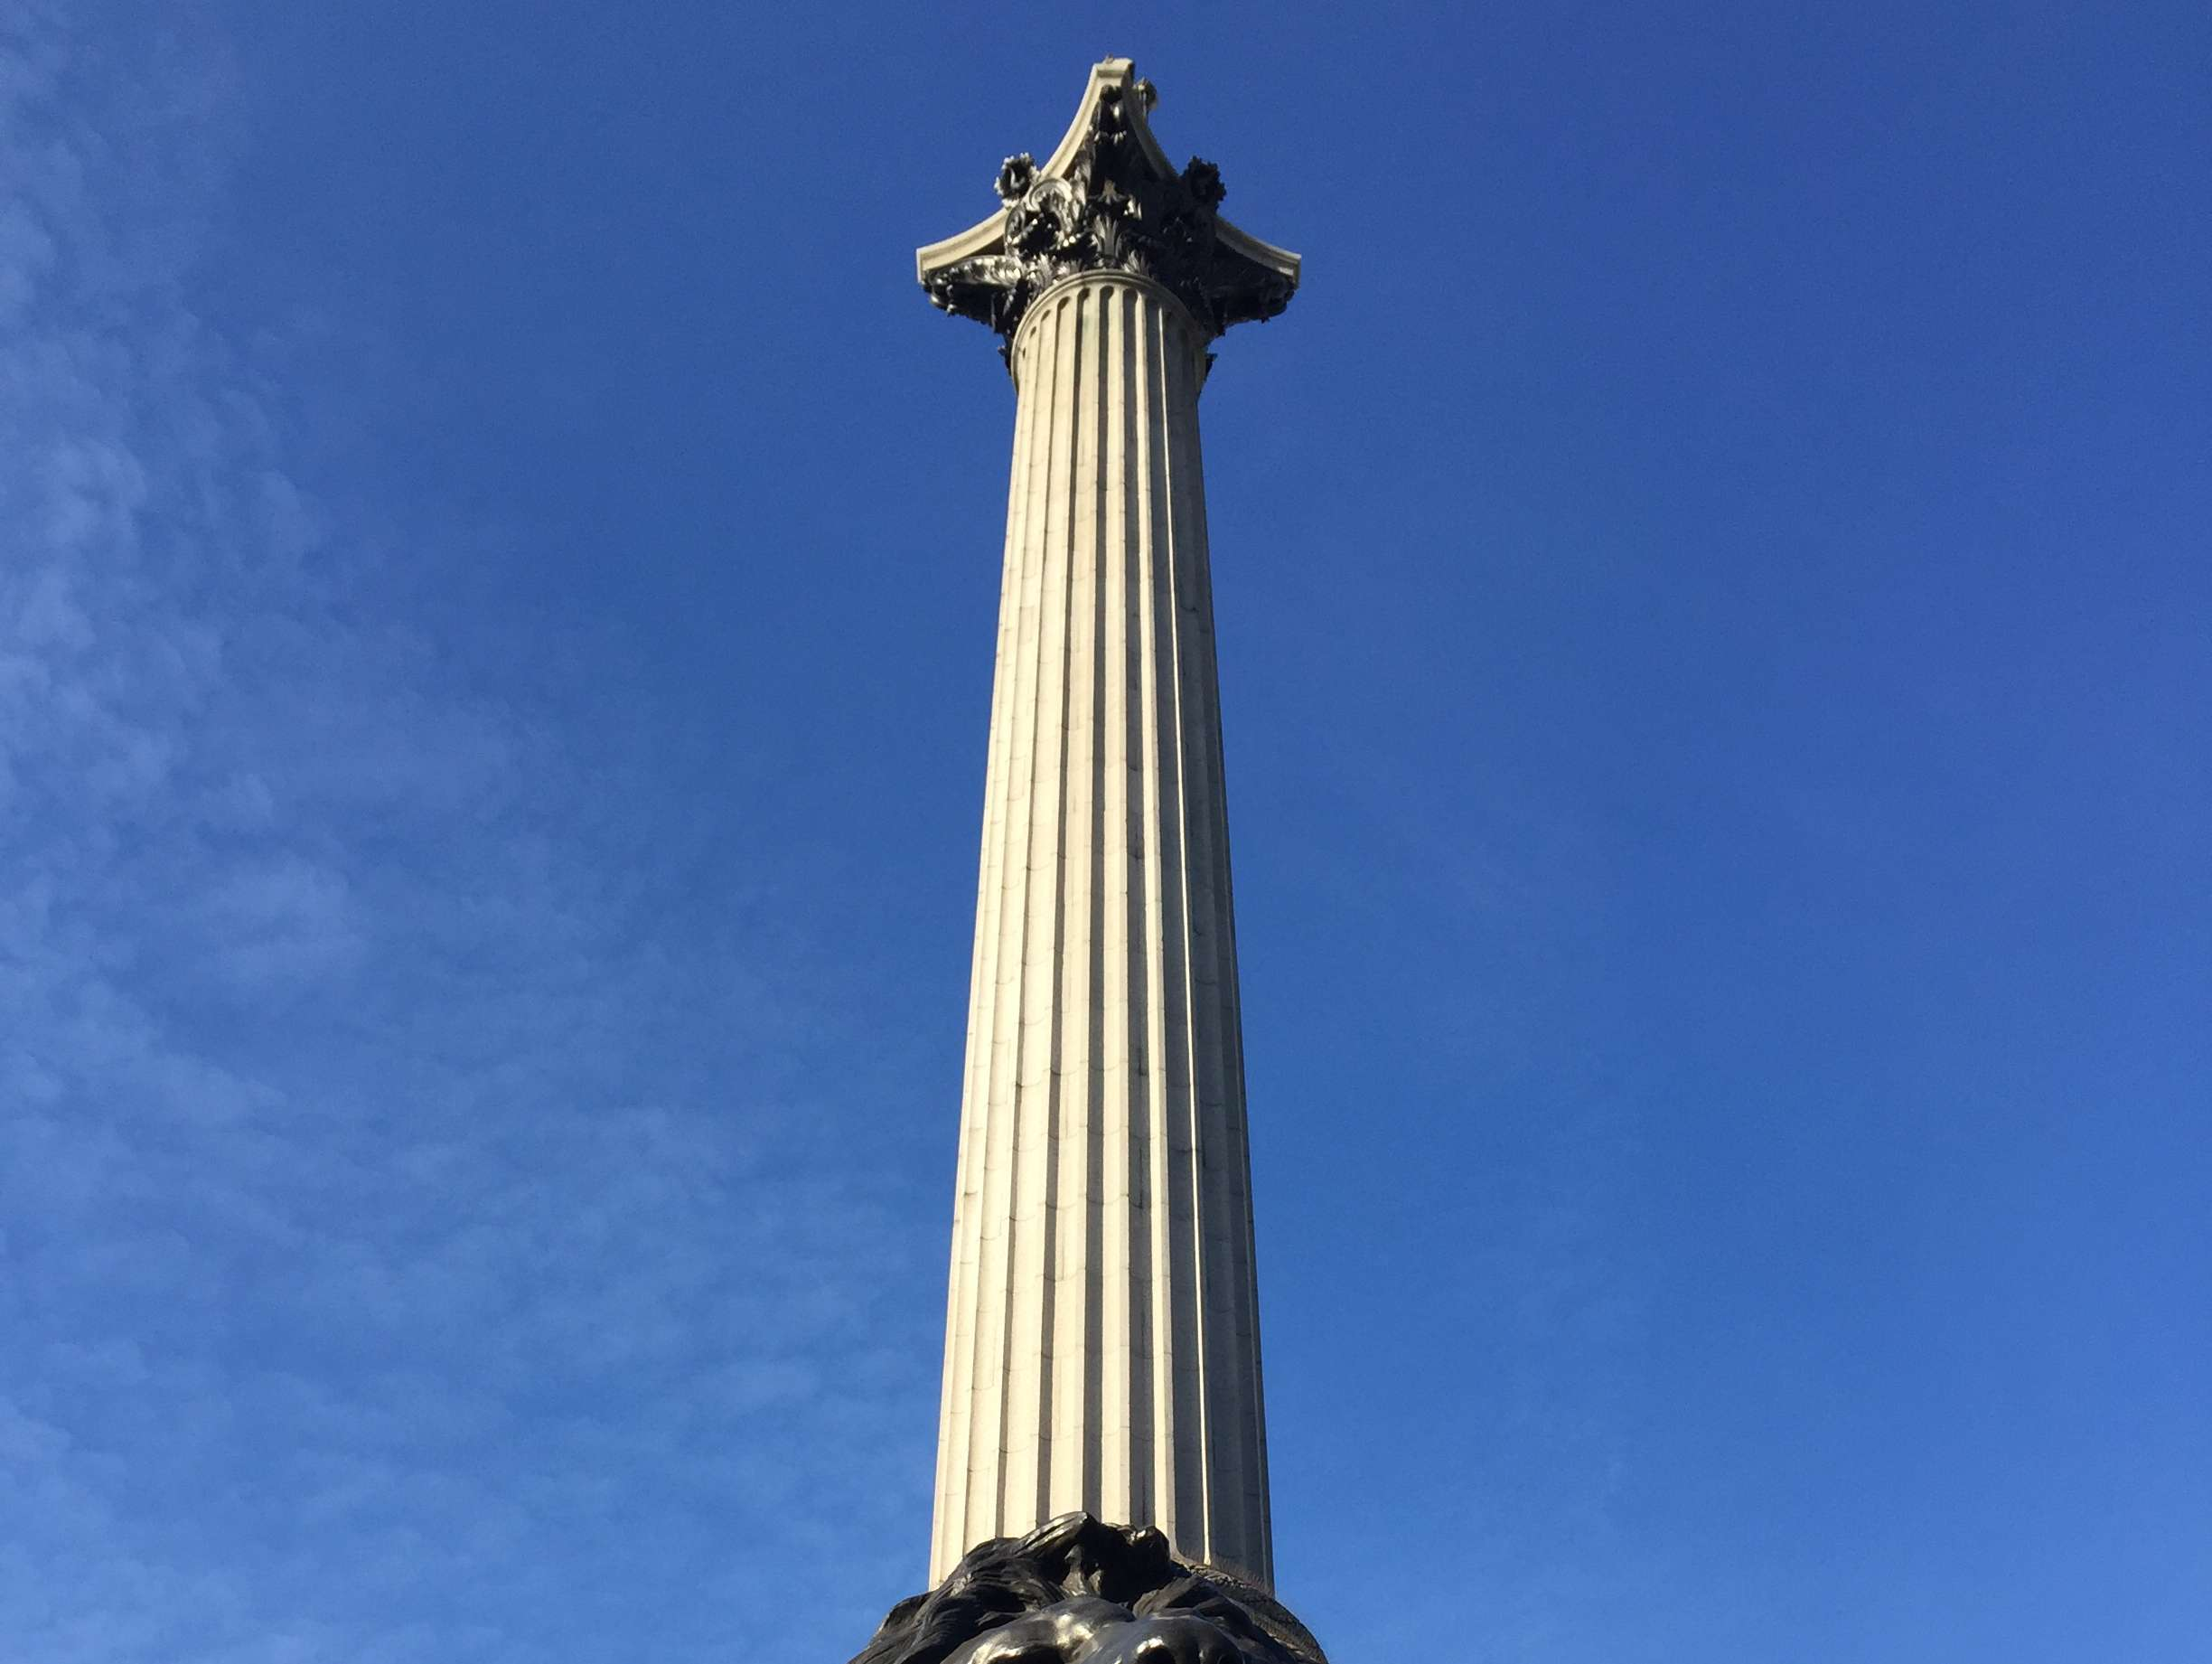 Reasons to live it large in London, England. - Nelsons Column